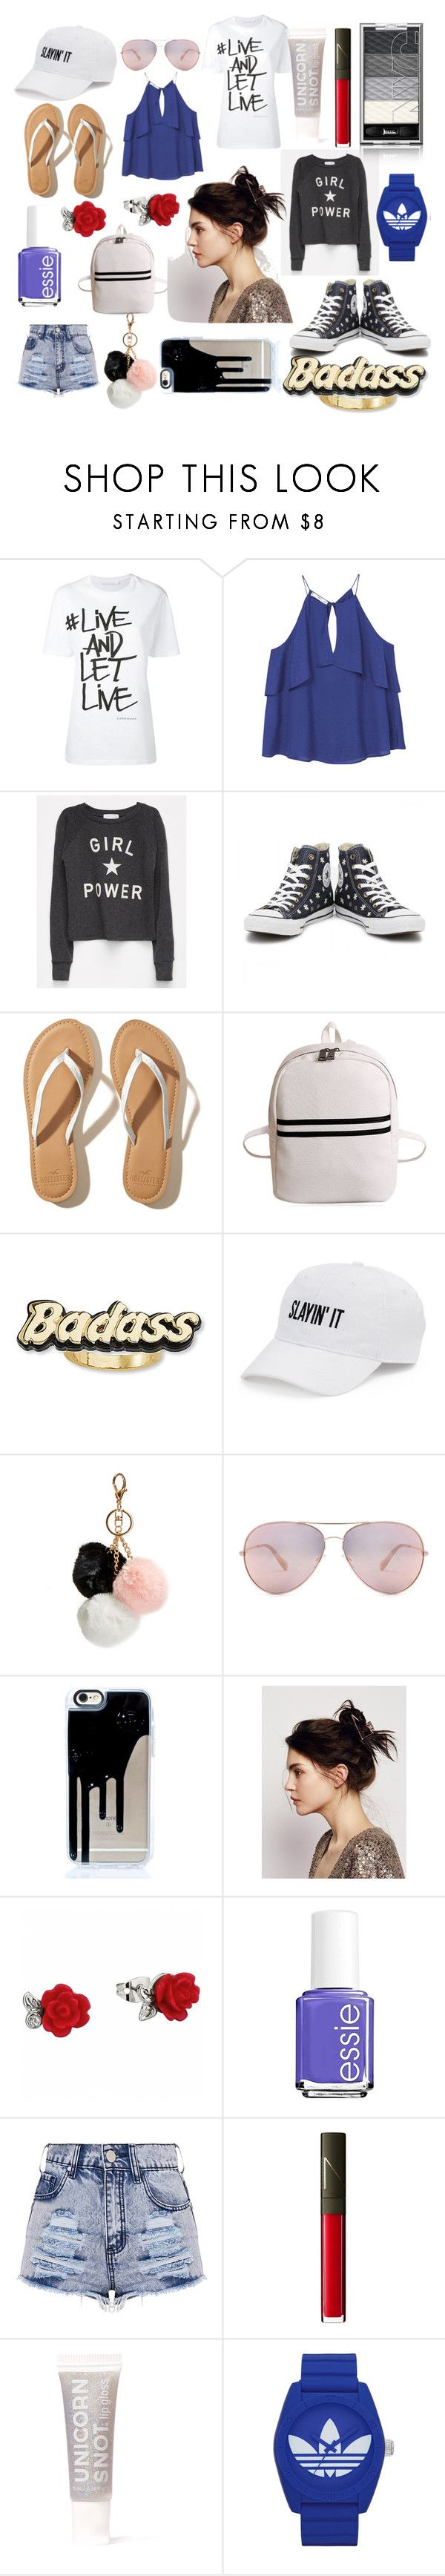 """viola"" by que2001 ❤ liked on Polyvore featuring Neil Barrett, MANGO, Full Tilt, Converse, Hollister Co., Steve Madden, SO, GUESS, Oliver Peoples and Free People"